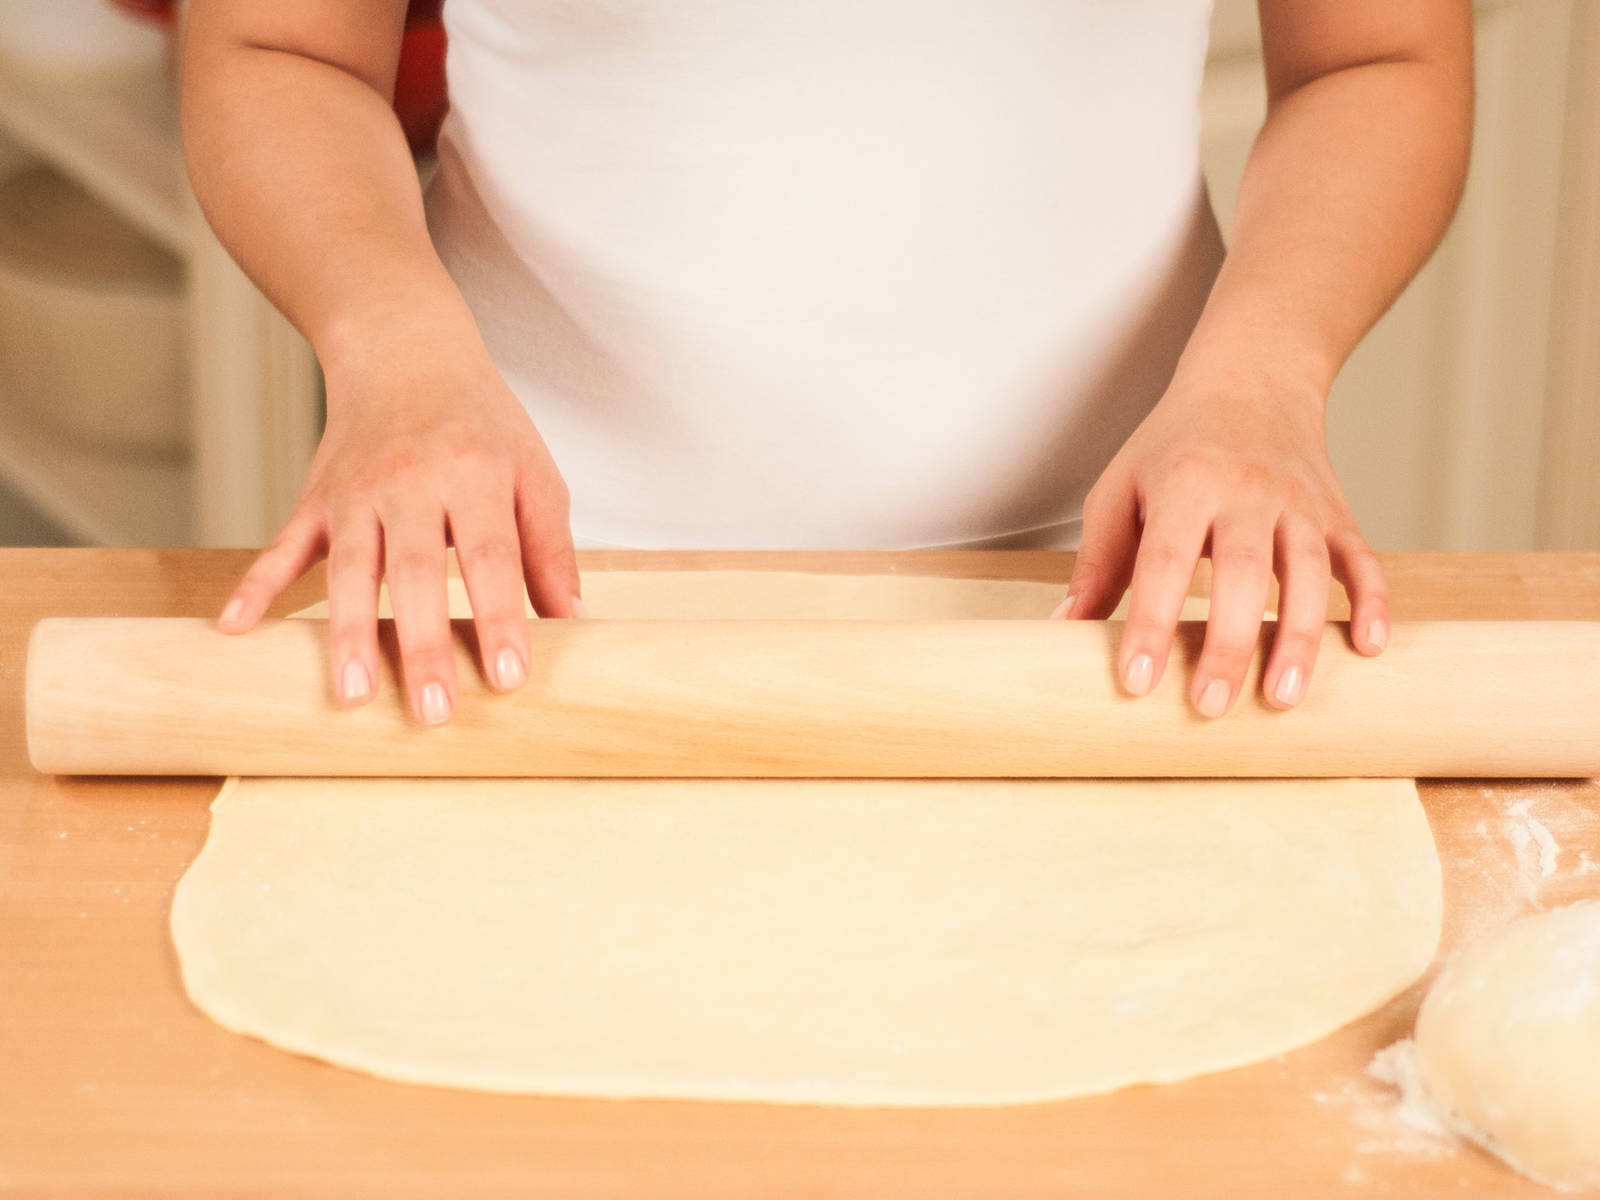 Preheat oven to 190⁰C/375⁰F. Halve the dough and roll each half into the shape of a rectangle, approx. 3 mm thick.